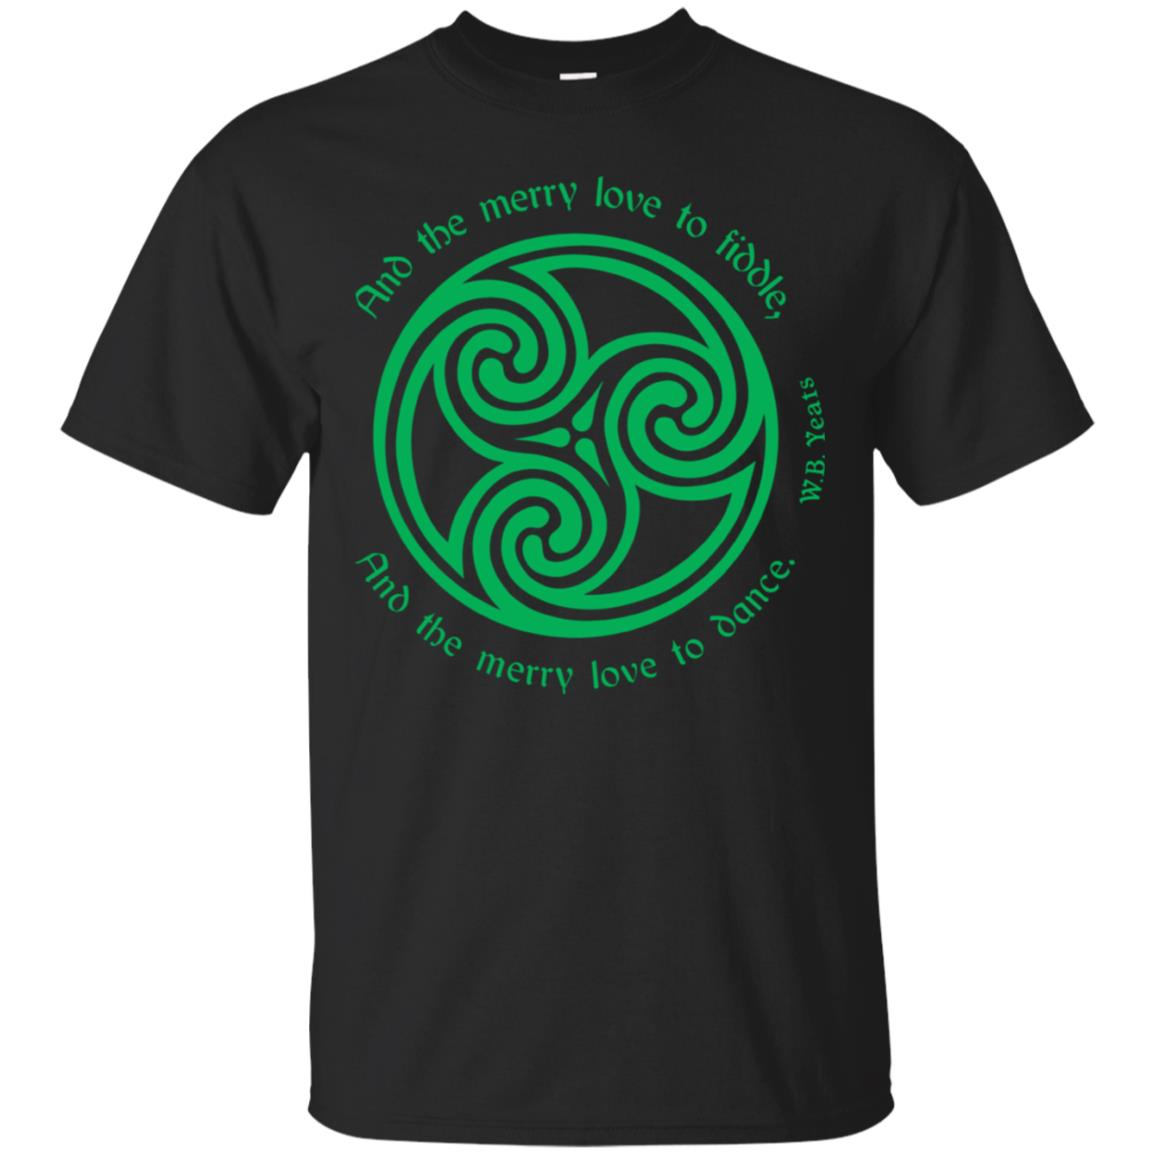 Yeats Poet Shirt Irish Celtic Knot Triskele Ireland Travel 99promocode